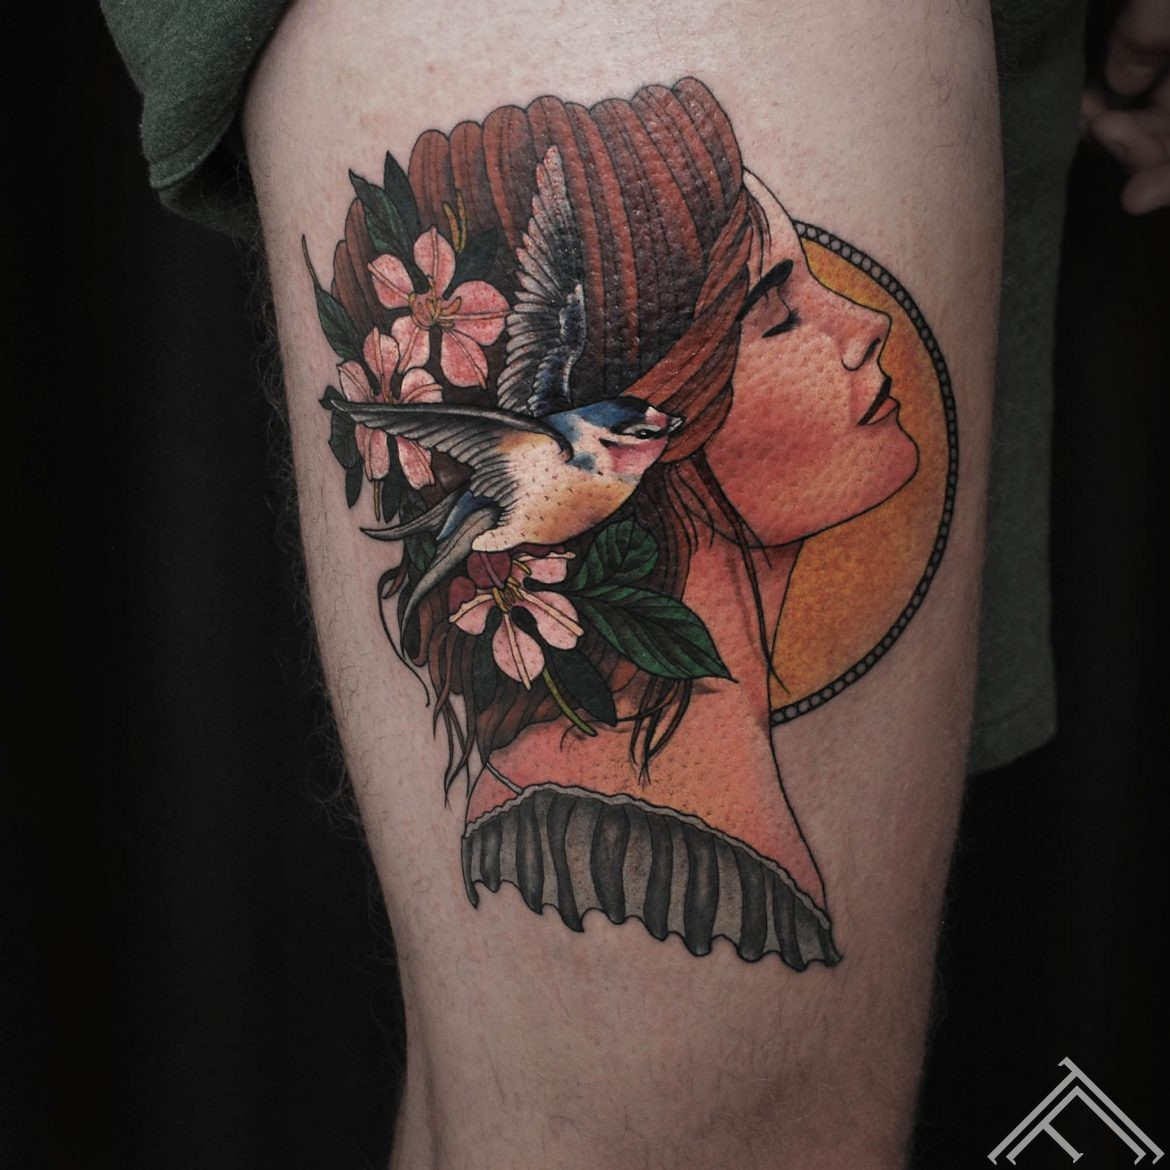 janisanderson-tattoo-tattoofrequency-riga